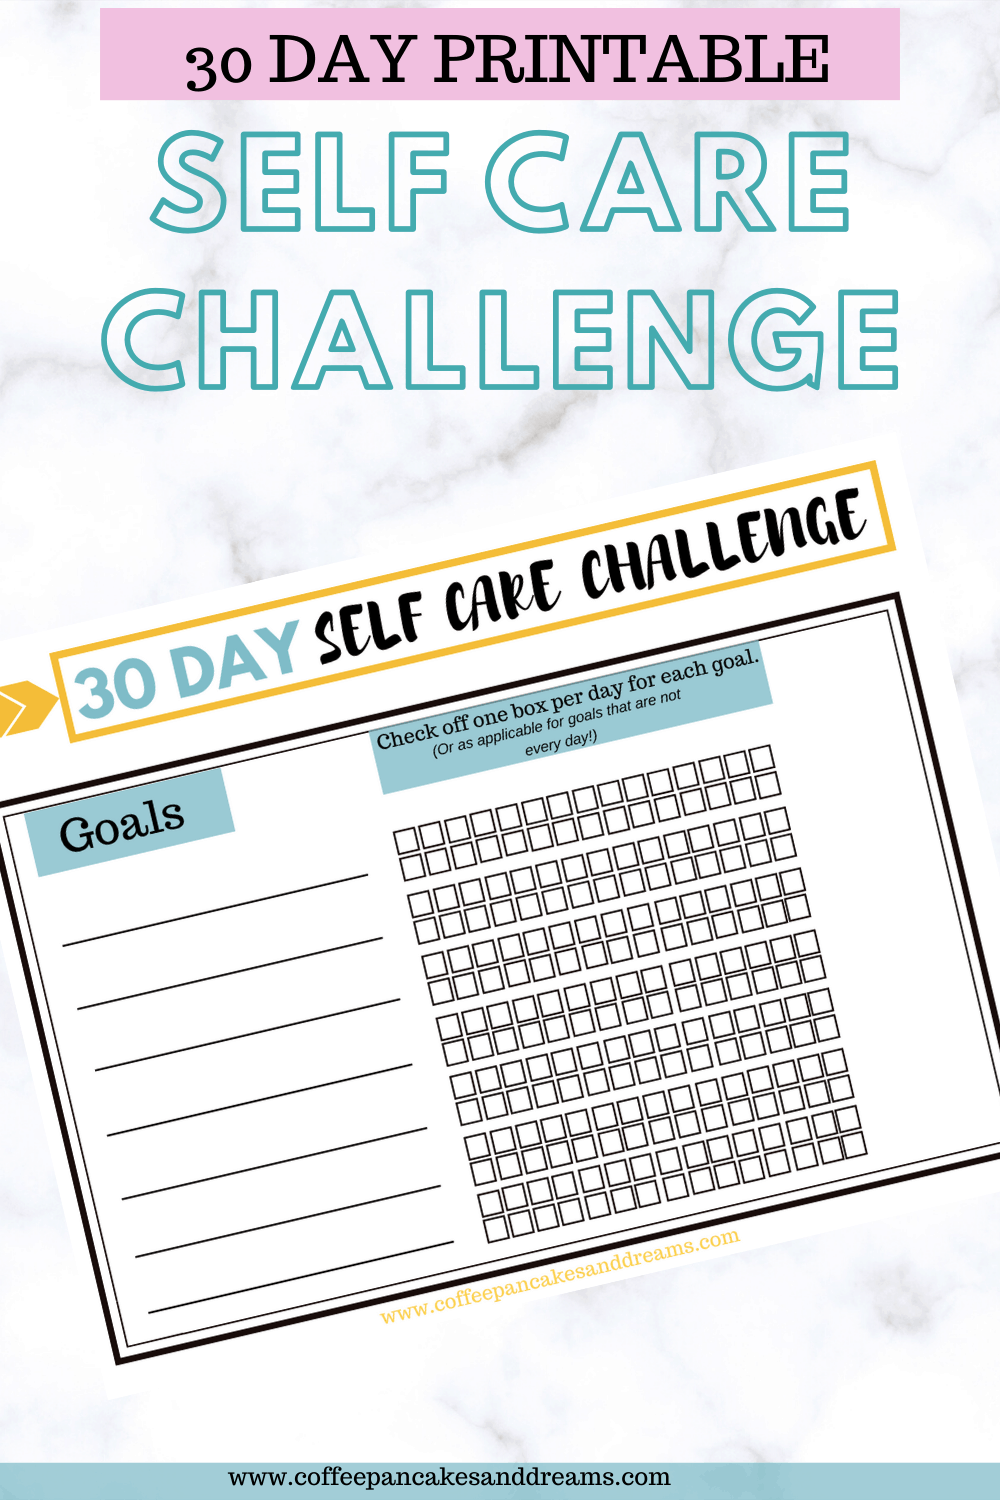 30 Day Self Care Challenge Printable Worksheet #selfcareideas #dailyselfcare #pdf